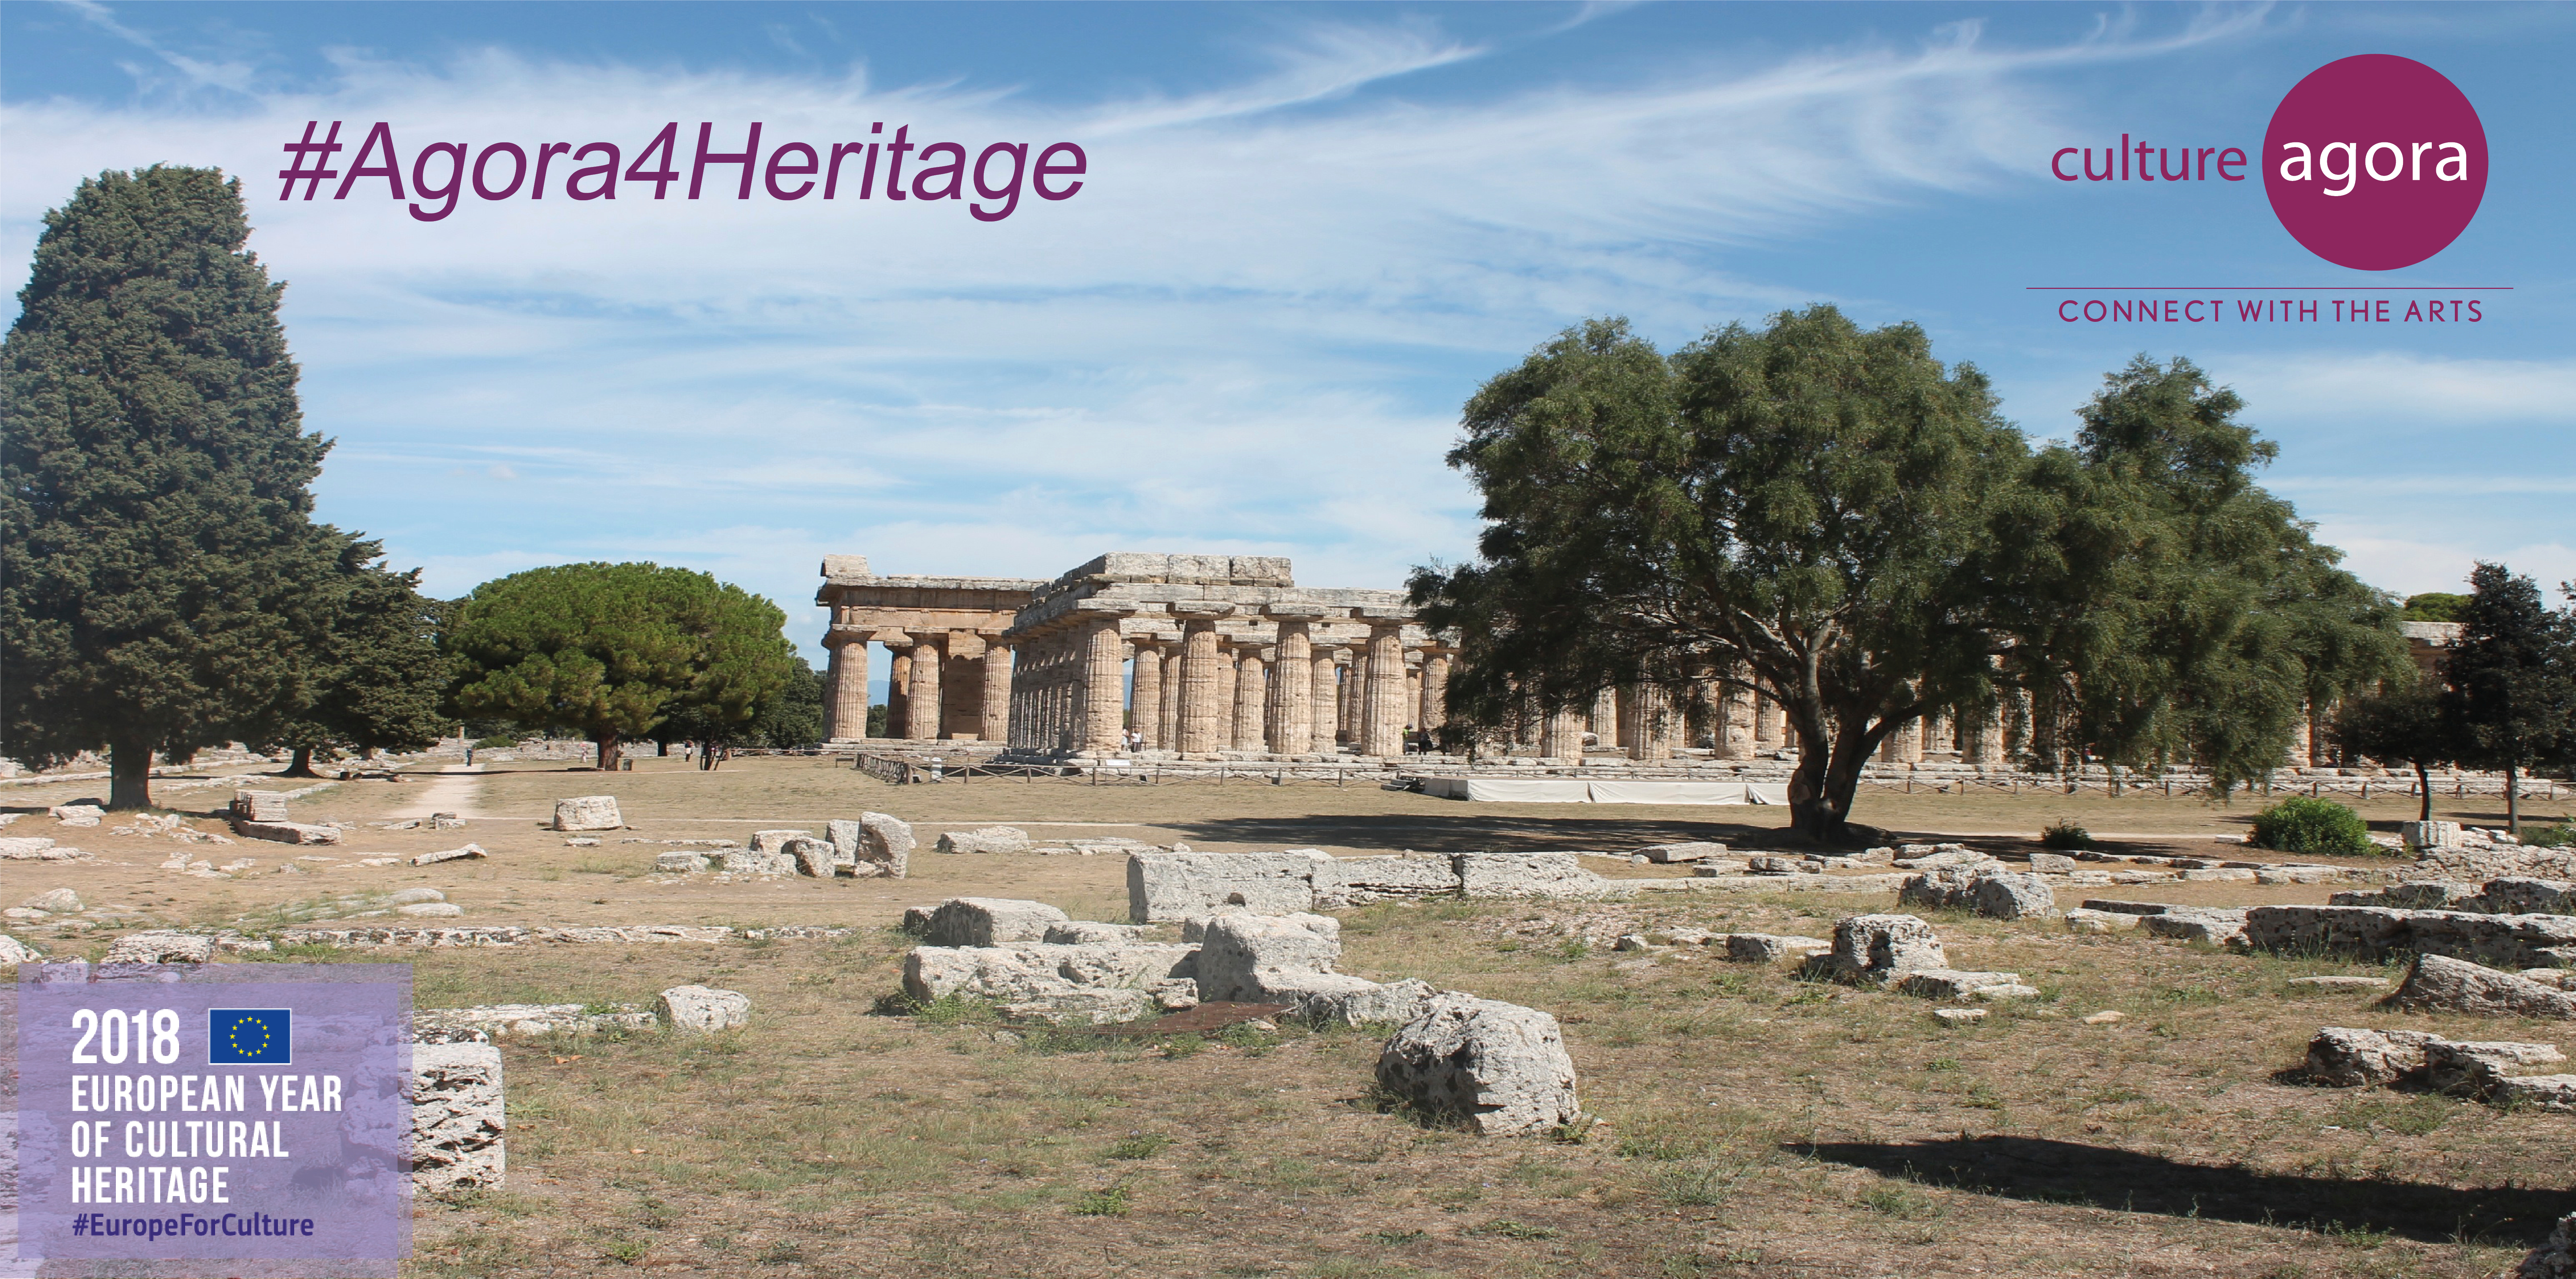 #Agora4Heritage: supporting the European Year of Cultural Heritage